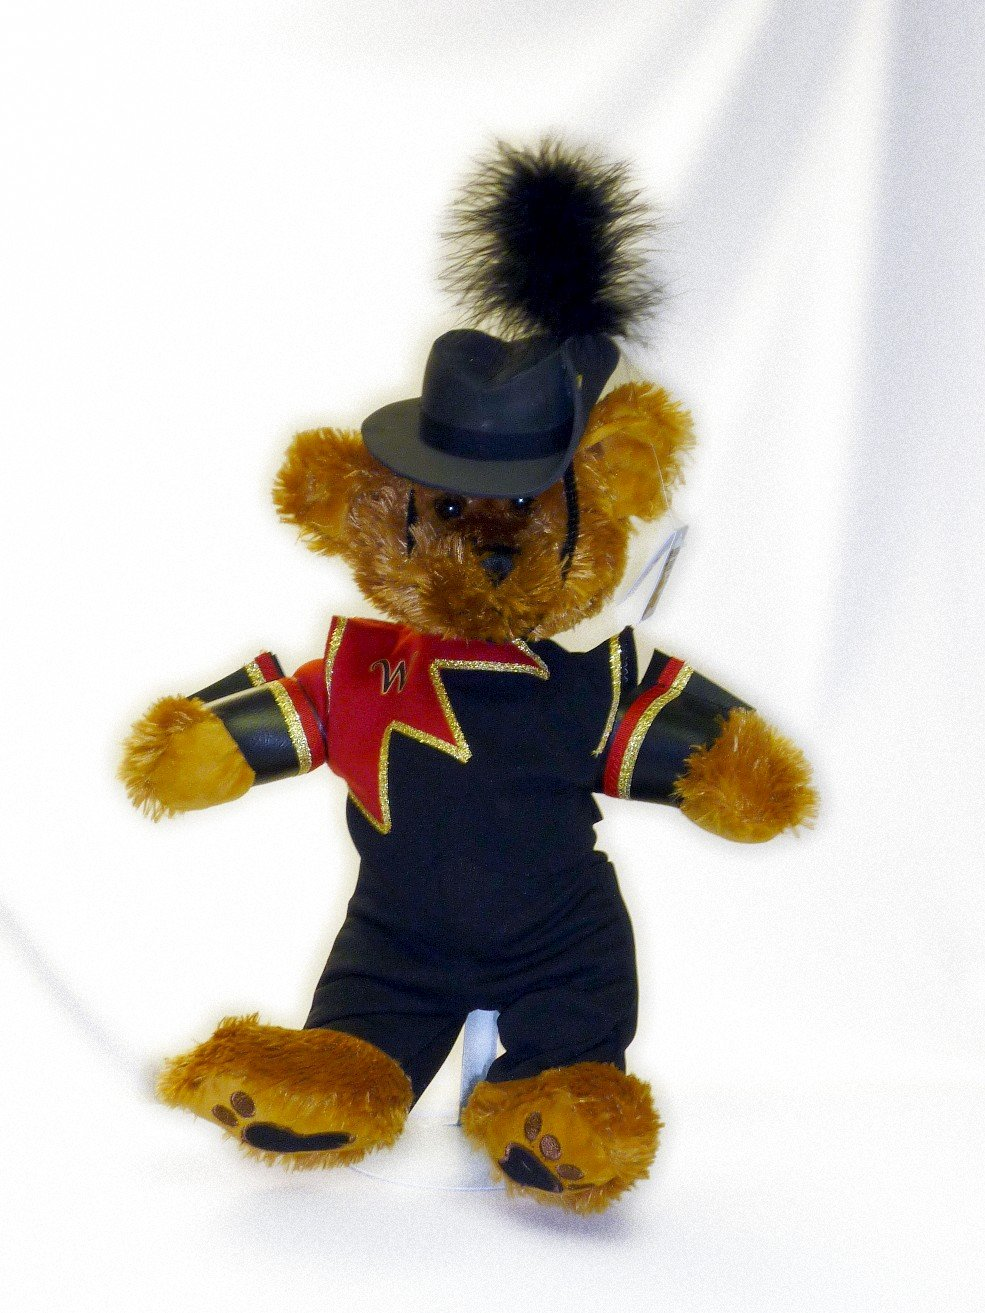 Warwick HS Marching Band Uniform Teddy Bear